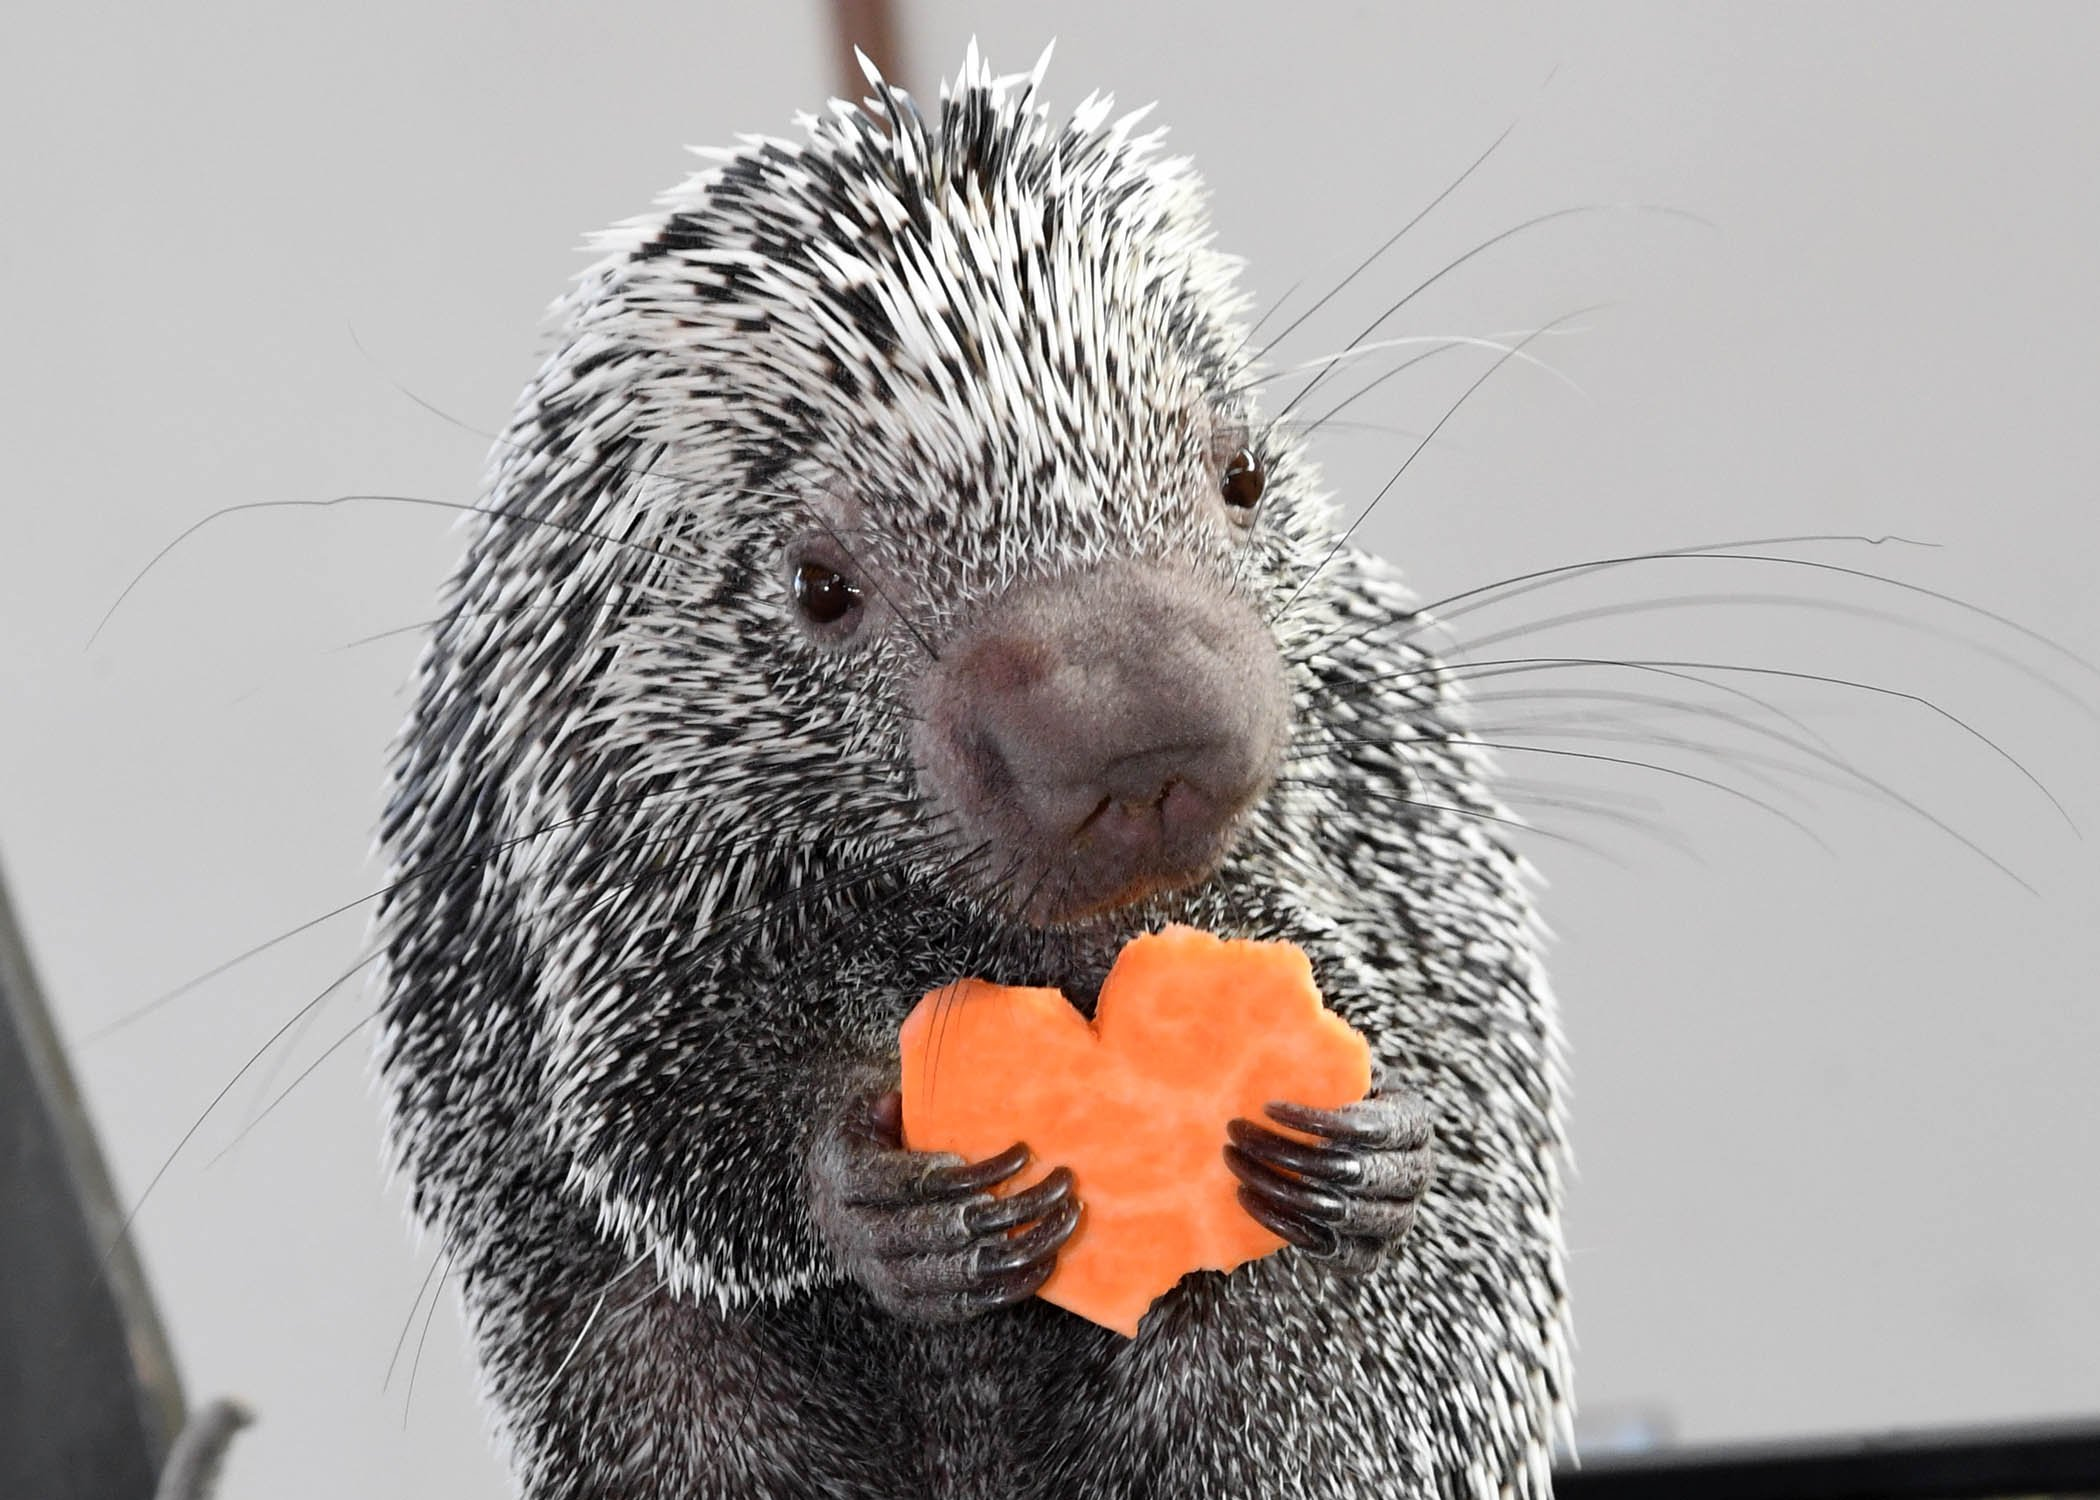 Quilbert the porcupine, clutching his sweet potato Valentine's treat. (Jim Schulz / Chicago Zoological Society)